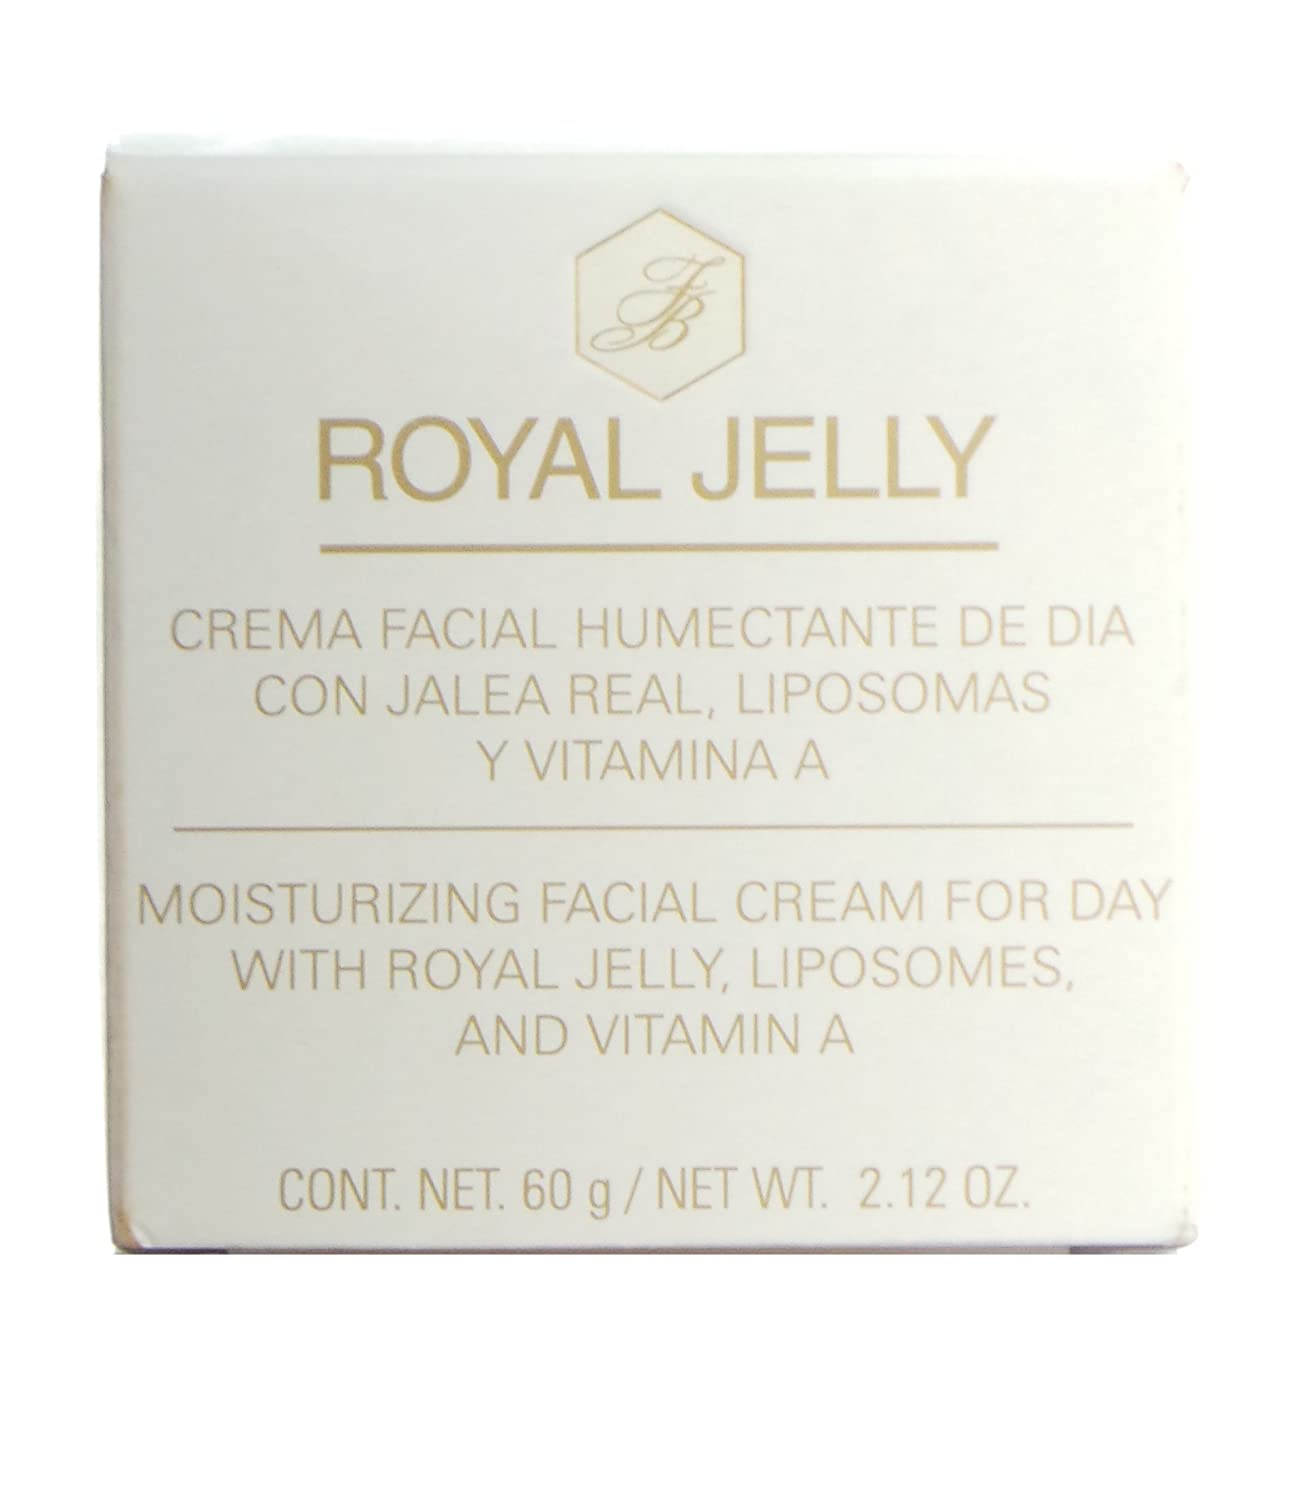 Amazon.com: Armand Dupree Moisturizing Facial Cream Day Royal Jelly Liposomes Vitamin A 60 g / 2.12 oz SRN: Beauty